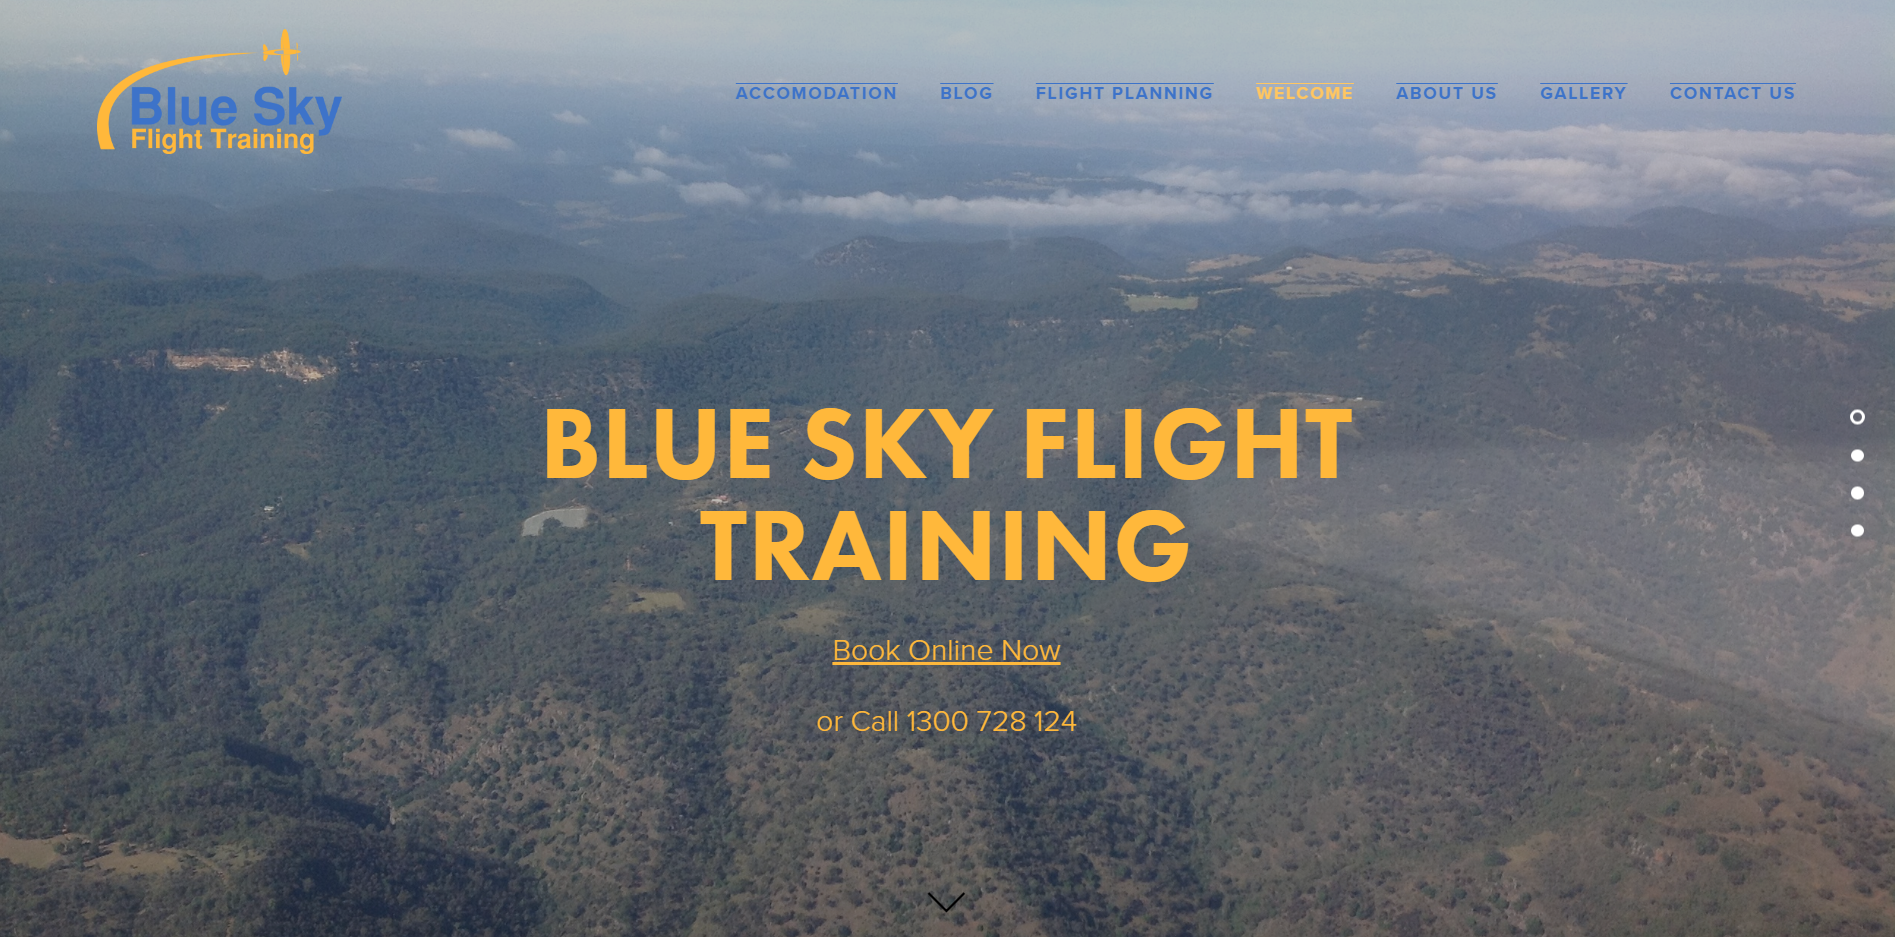 Blue Sky Flight Training